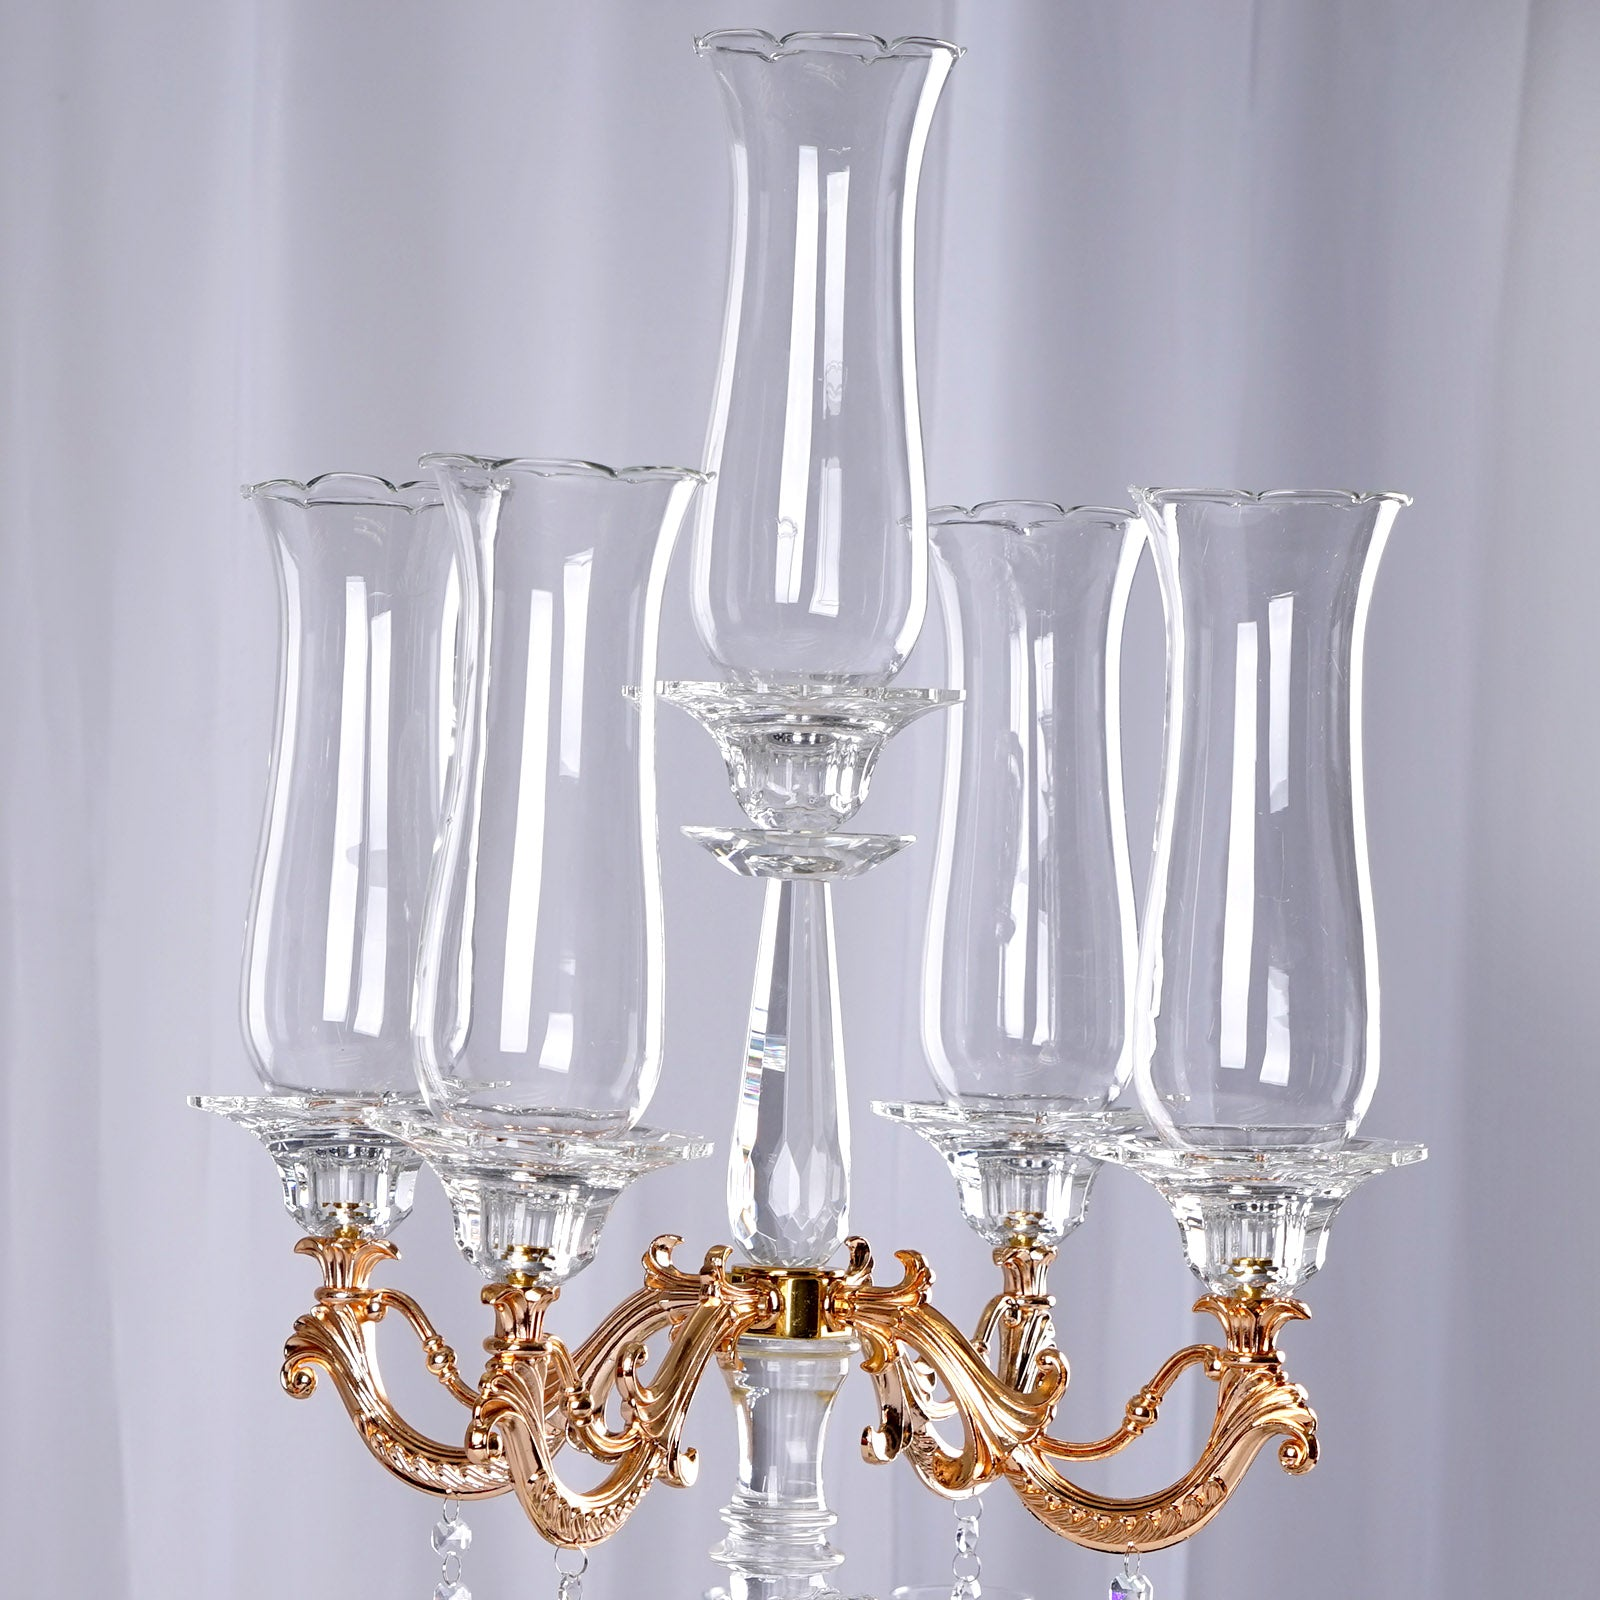 31 Tall 5 Arm Gold Sculpted Crystal Glass Table Top Candelabra Hurricane Taper Candle Holder